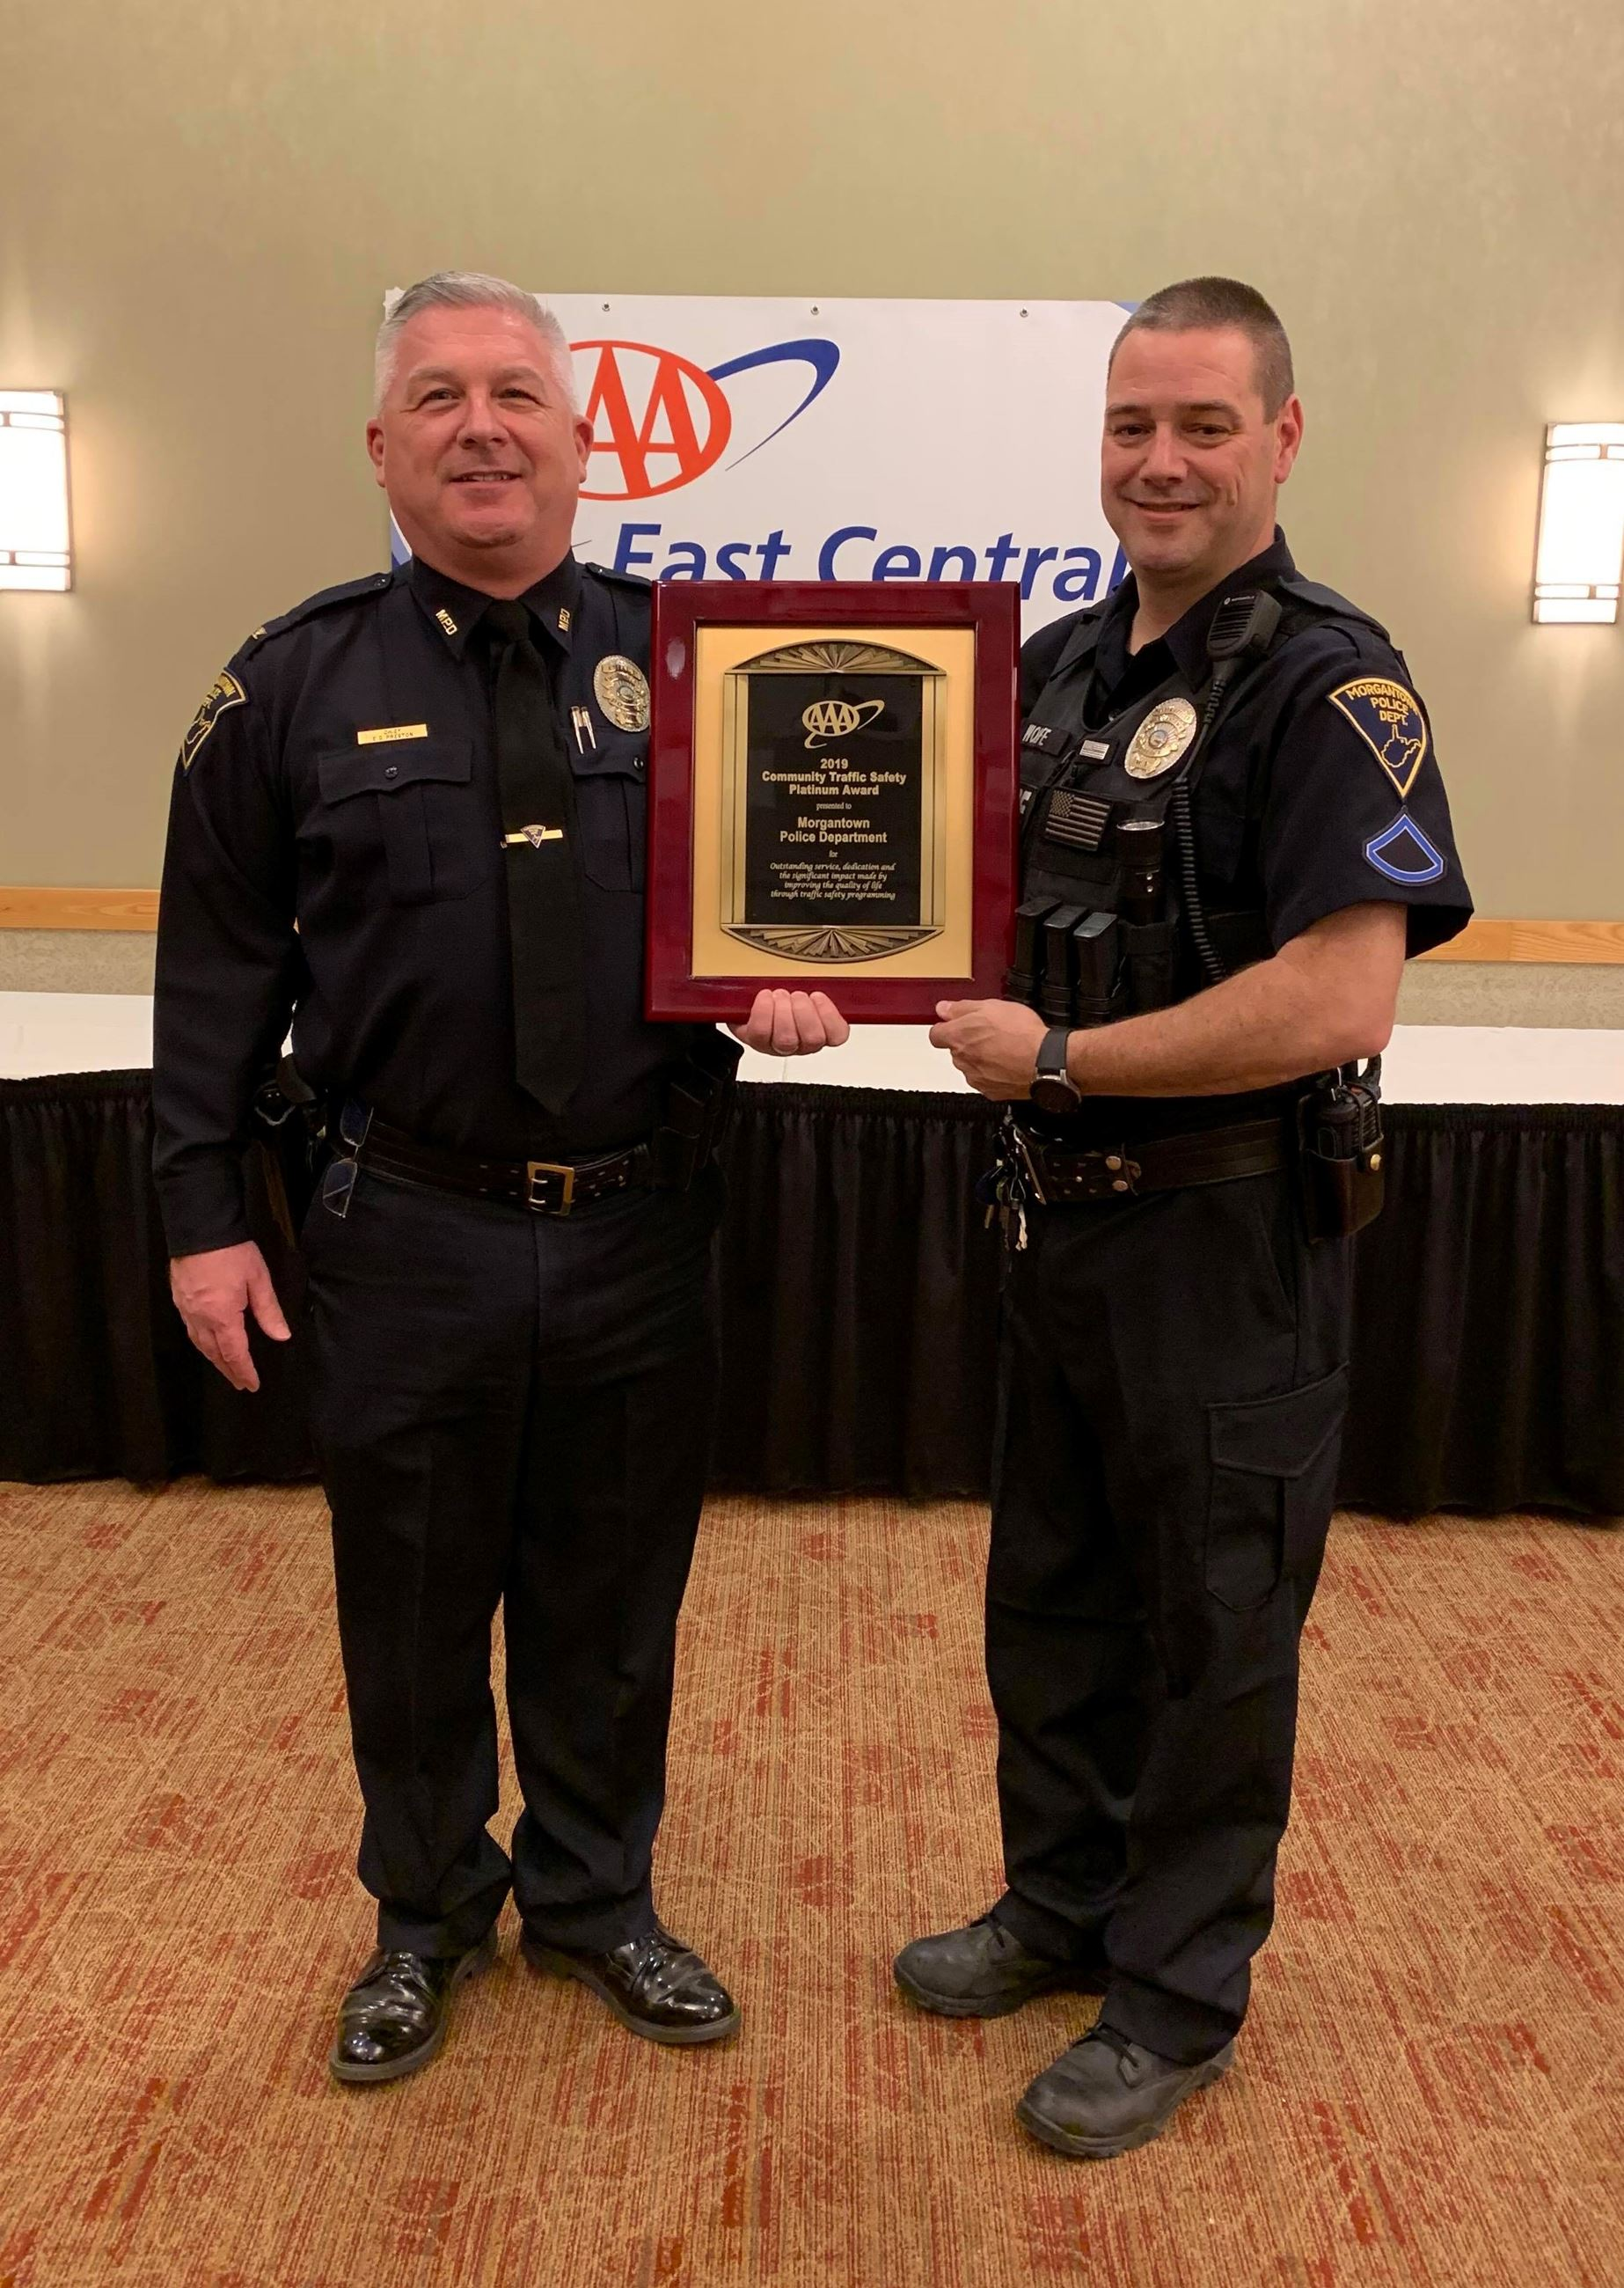 A photo of Chief Preston and Officer Wolfe holding the AAA Traffic Safety Award